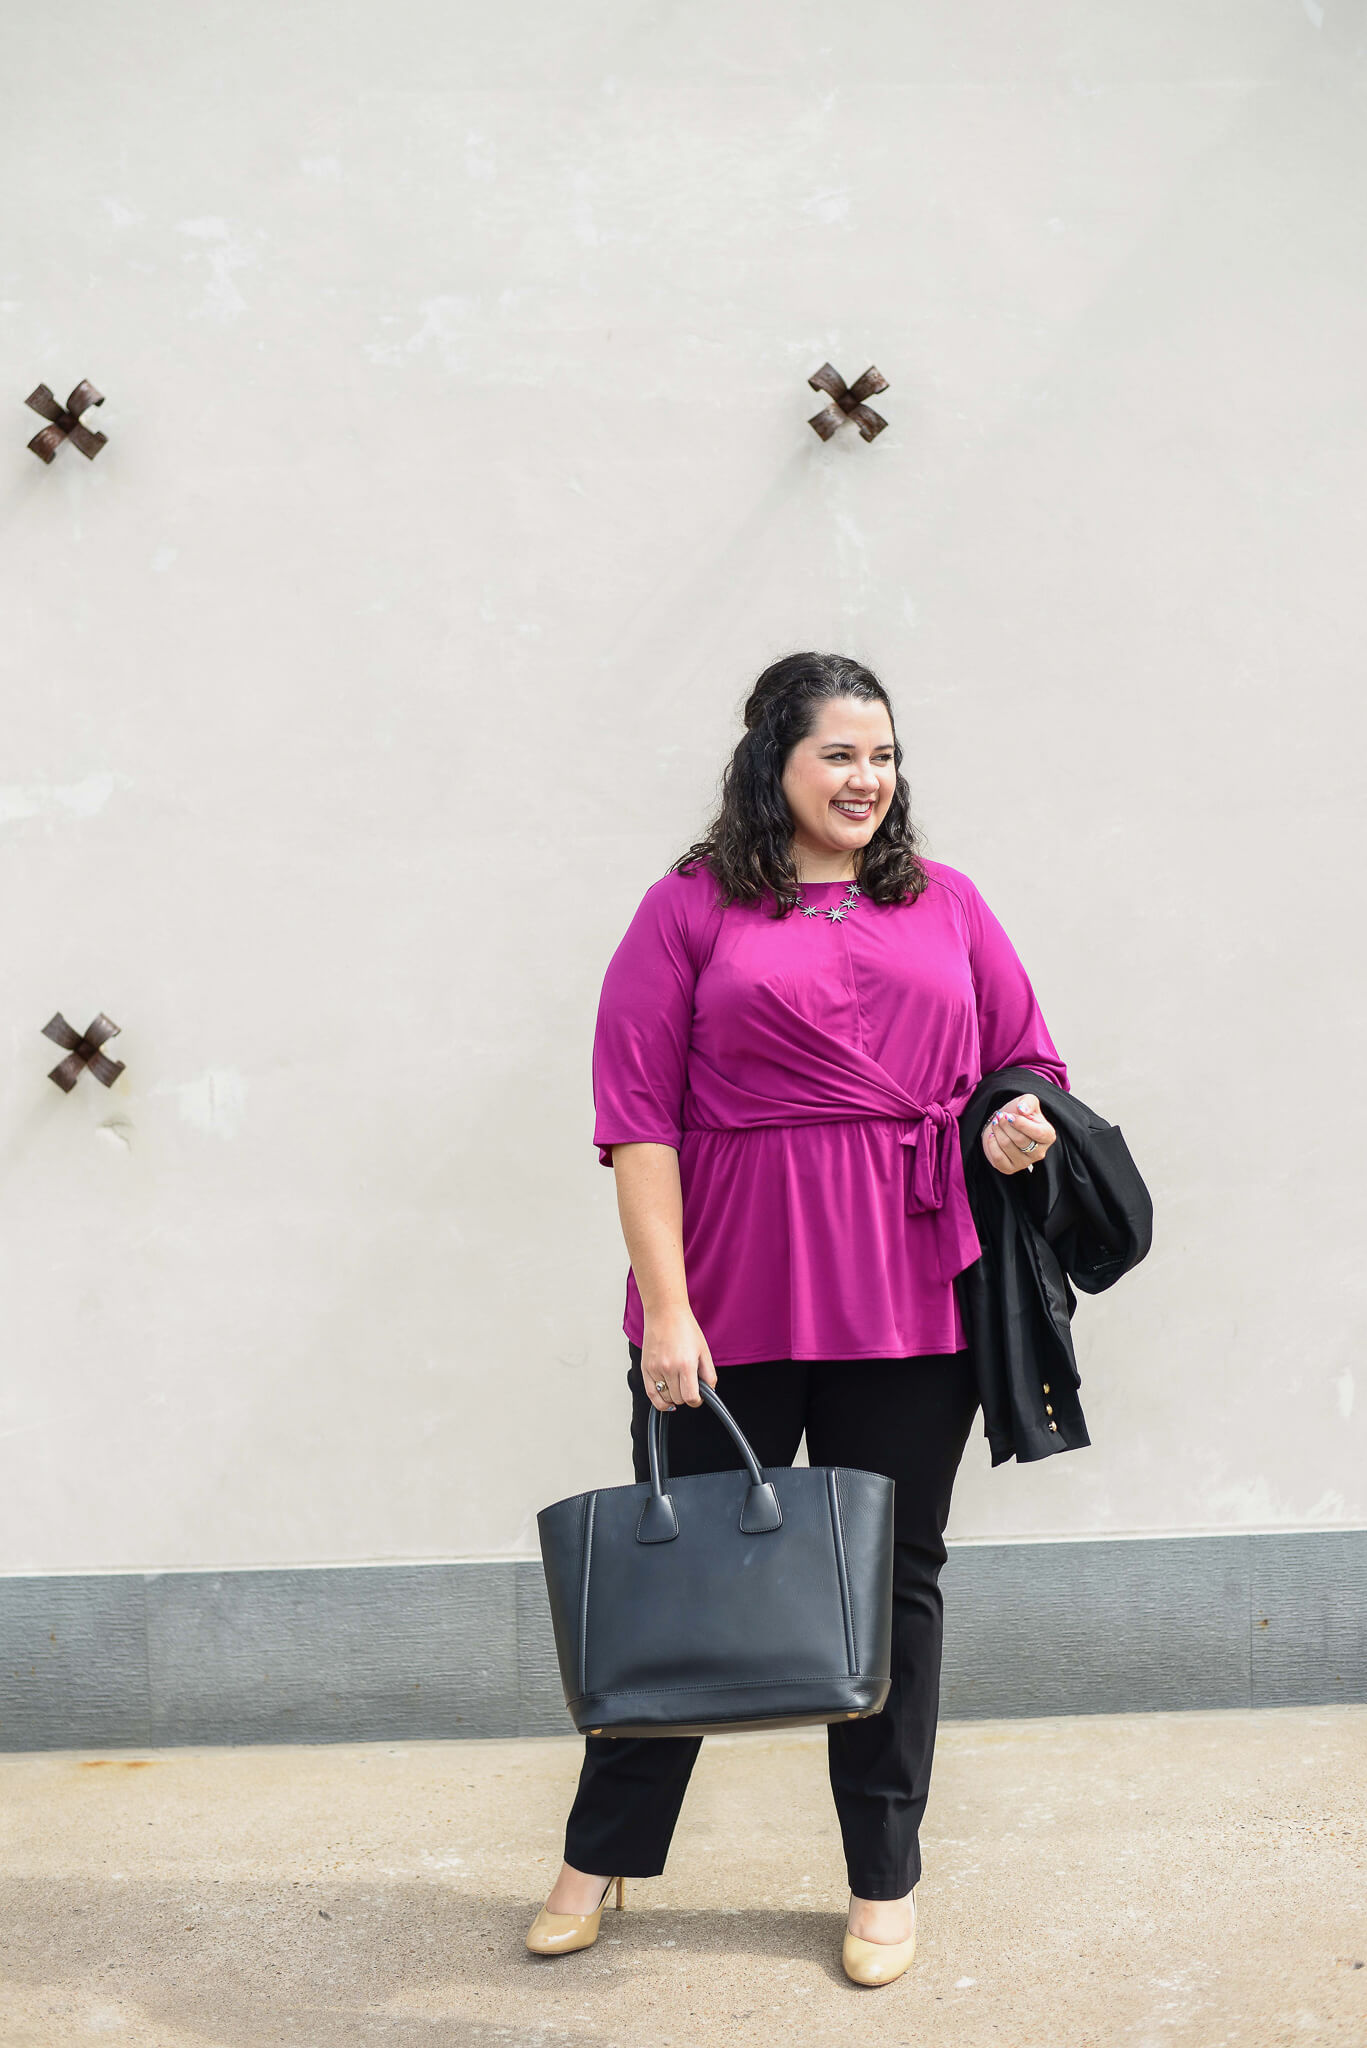 Going from business casual to business formal is super easy especially when you have great foundational pieces that can be mixed and matched. Lane Bryant has a great selection of workwear clothes that can take you from the boardroom to the bar.